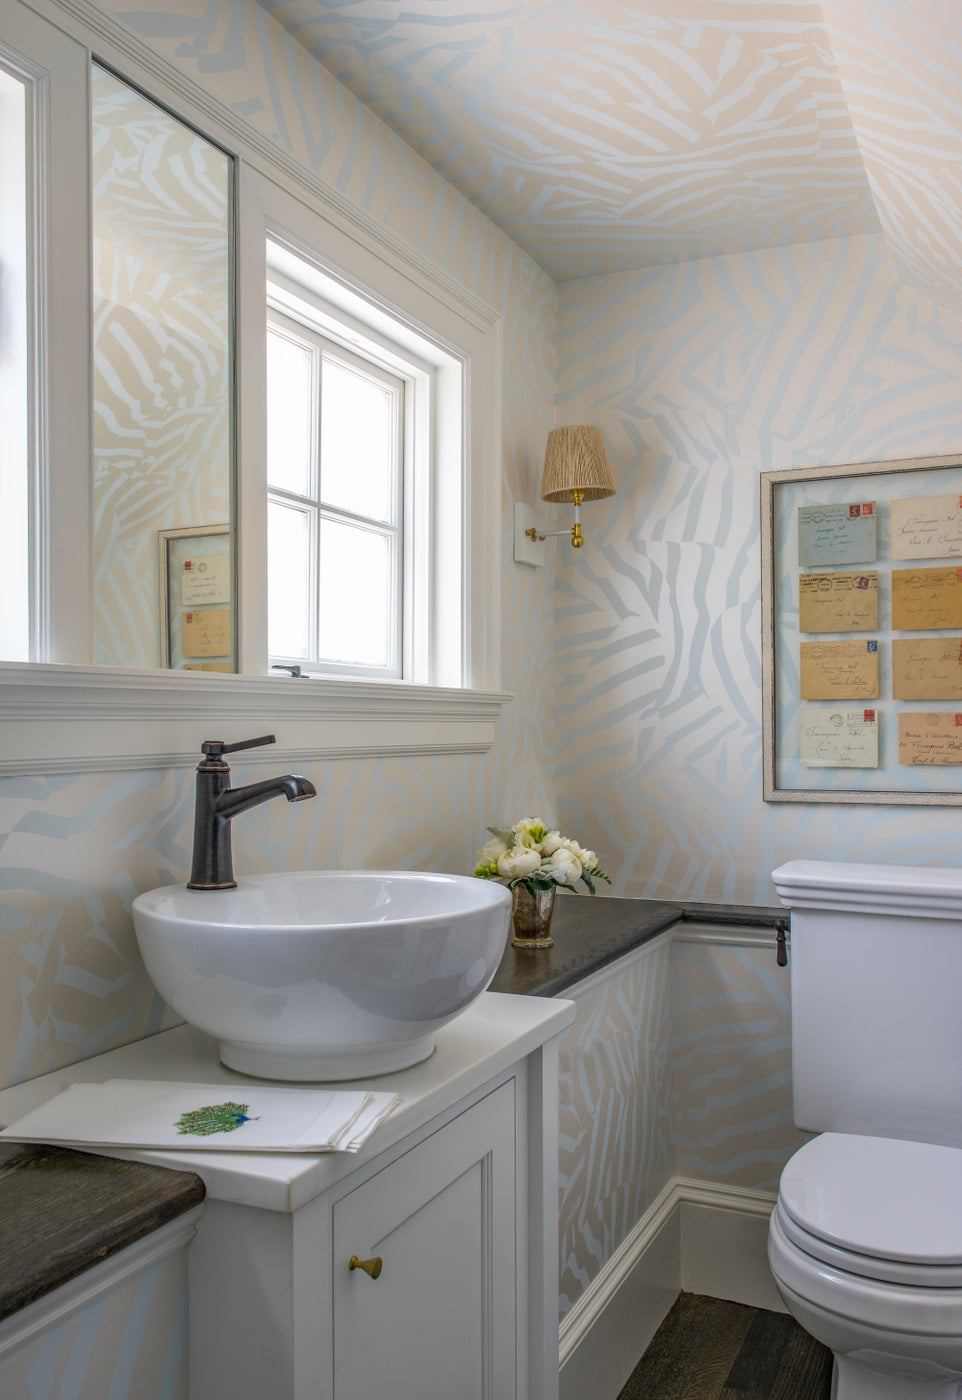 Wallpapered Bathroom with Ceramic Basin Sink and Letter Wall Art